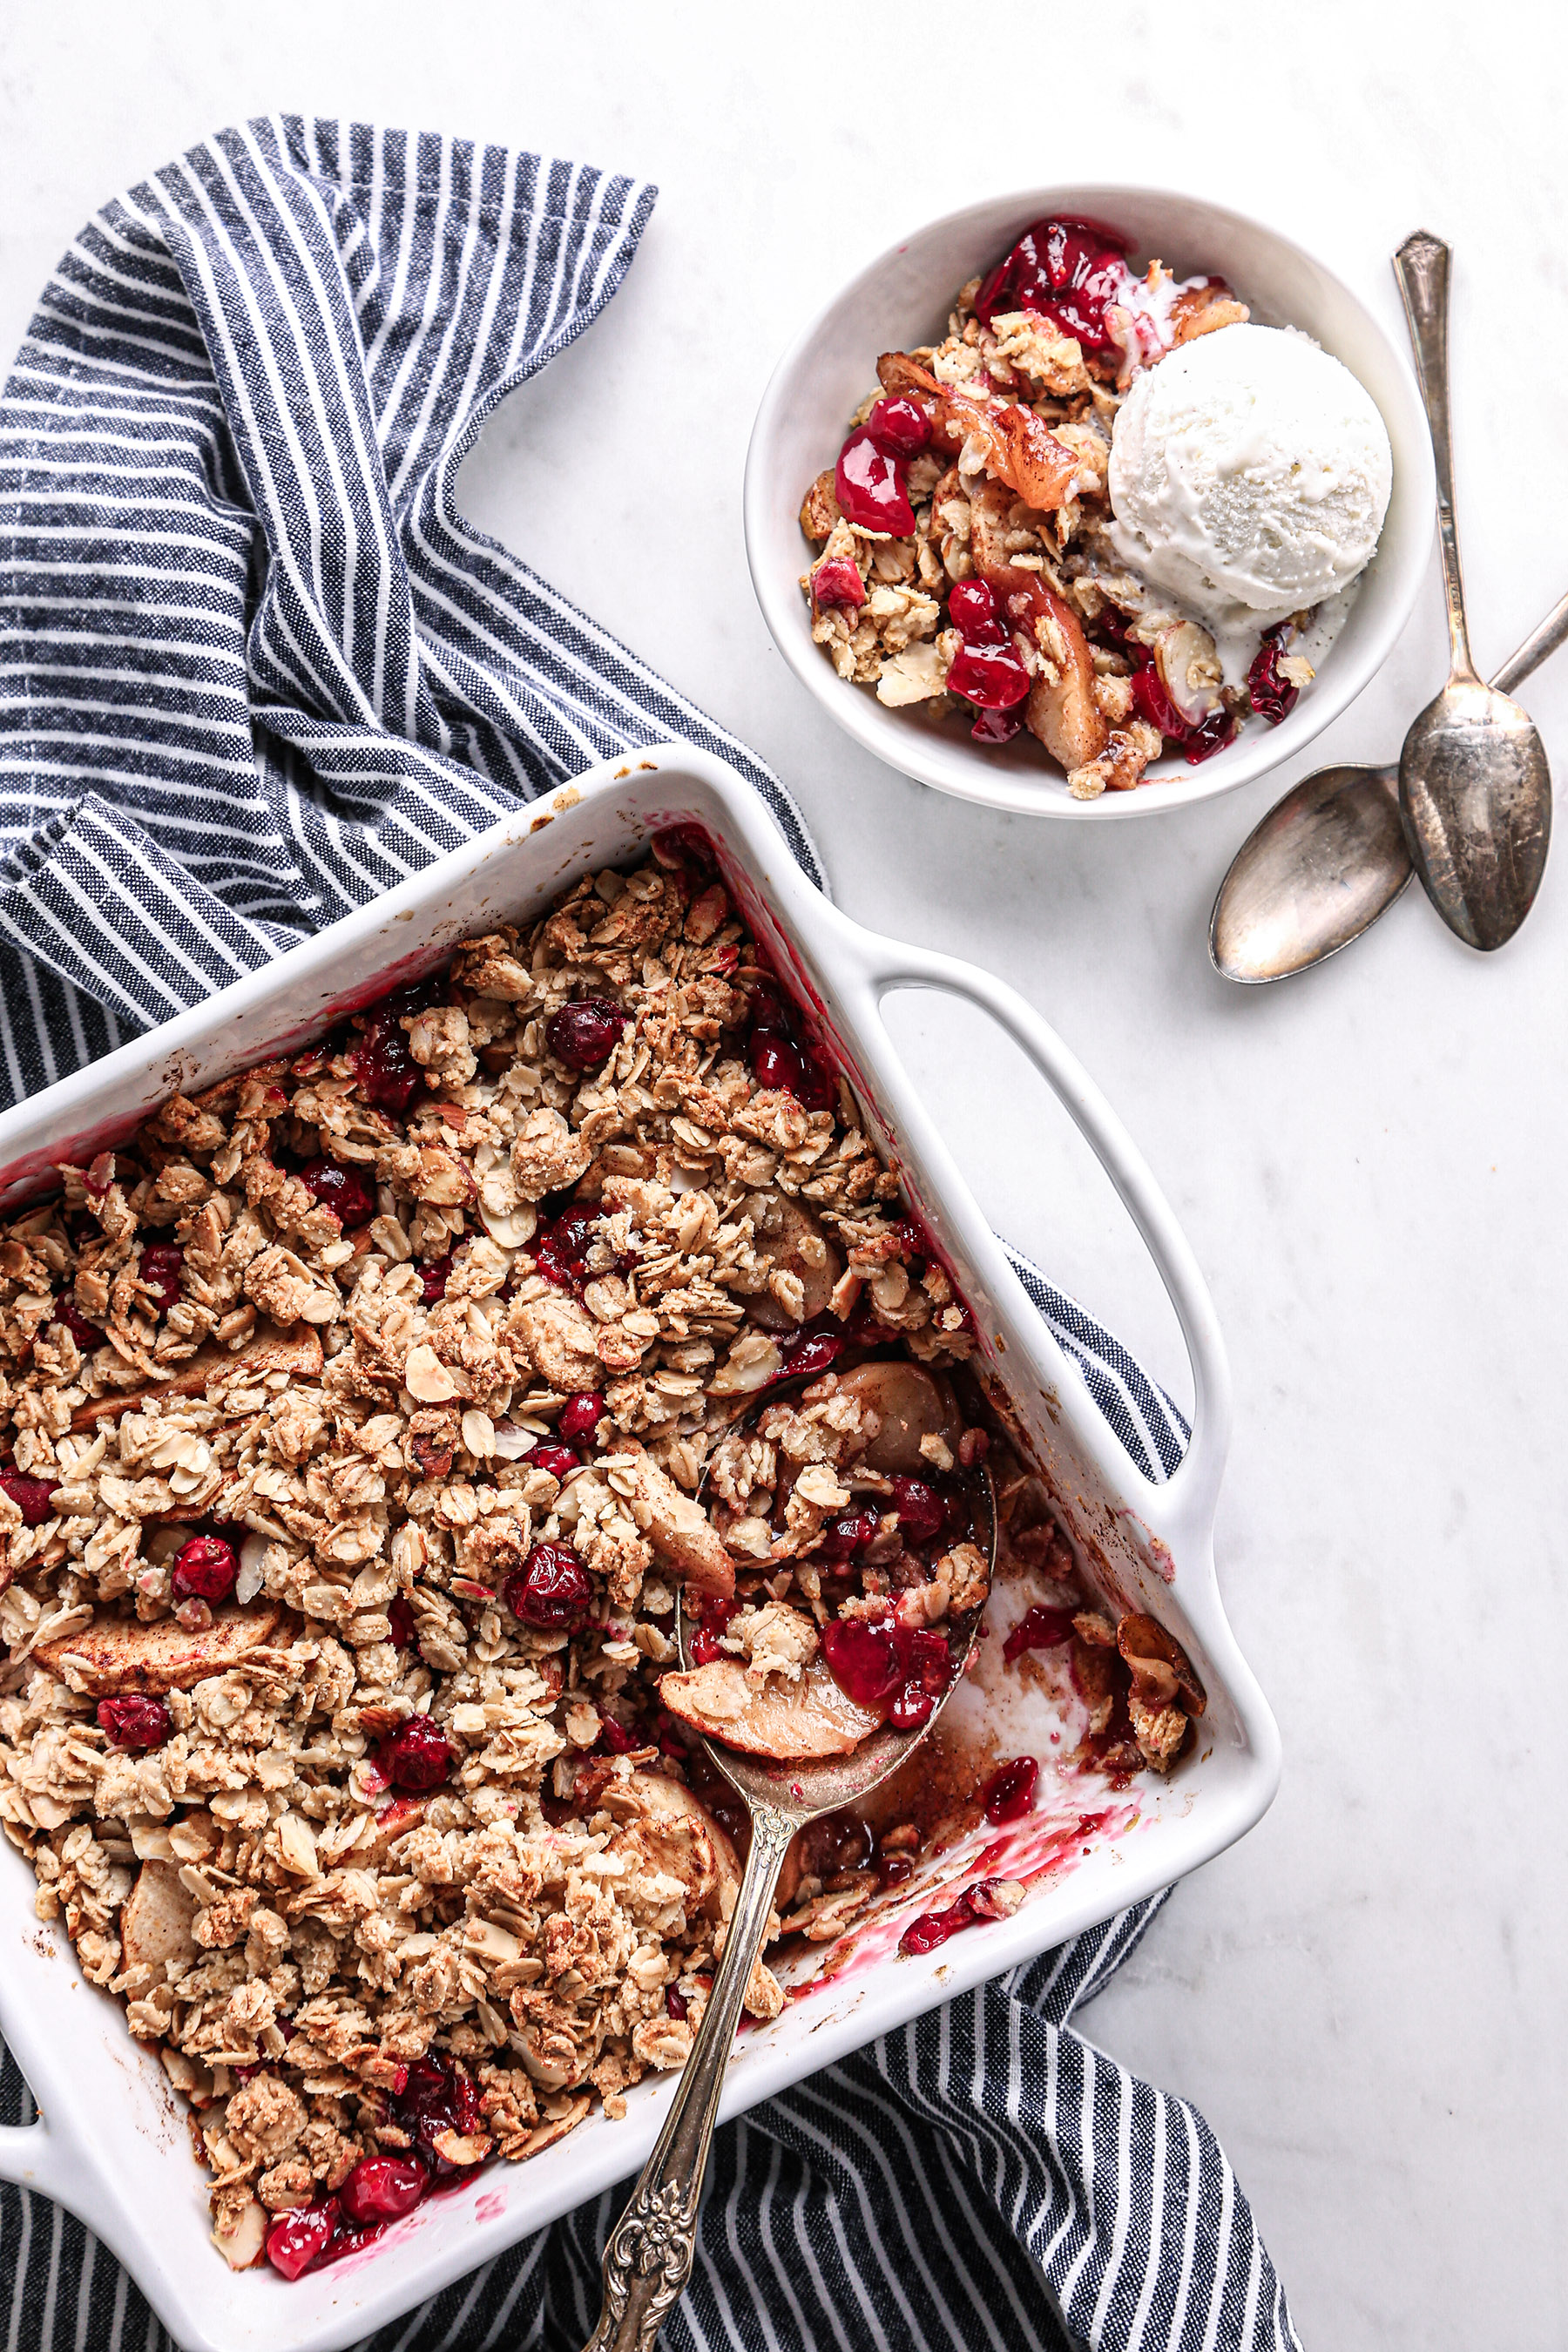 Healthy Apple-Cranberry Crisp | Vegan friendly plus gluten and refined sugar free